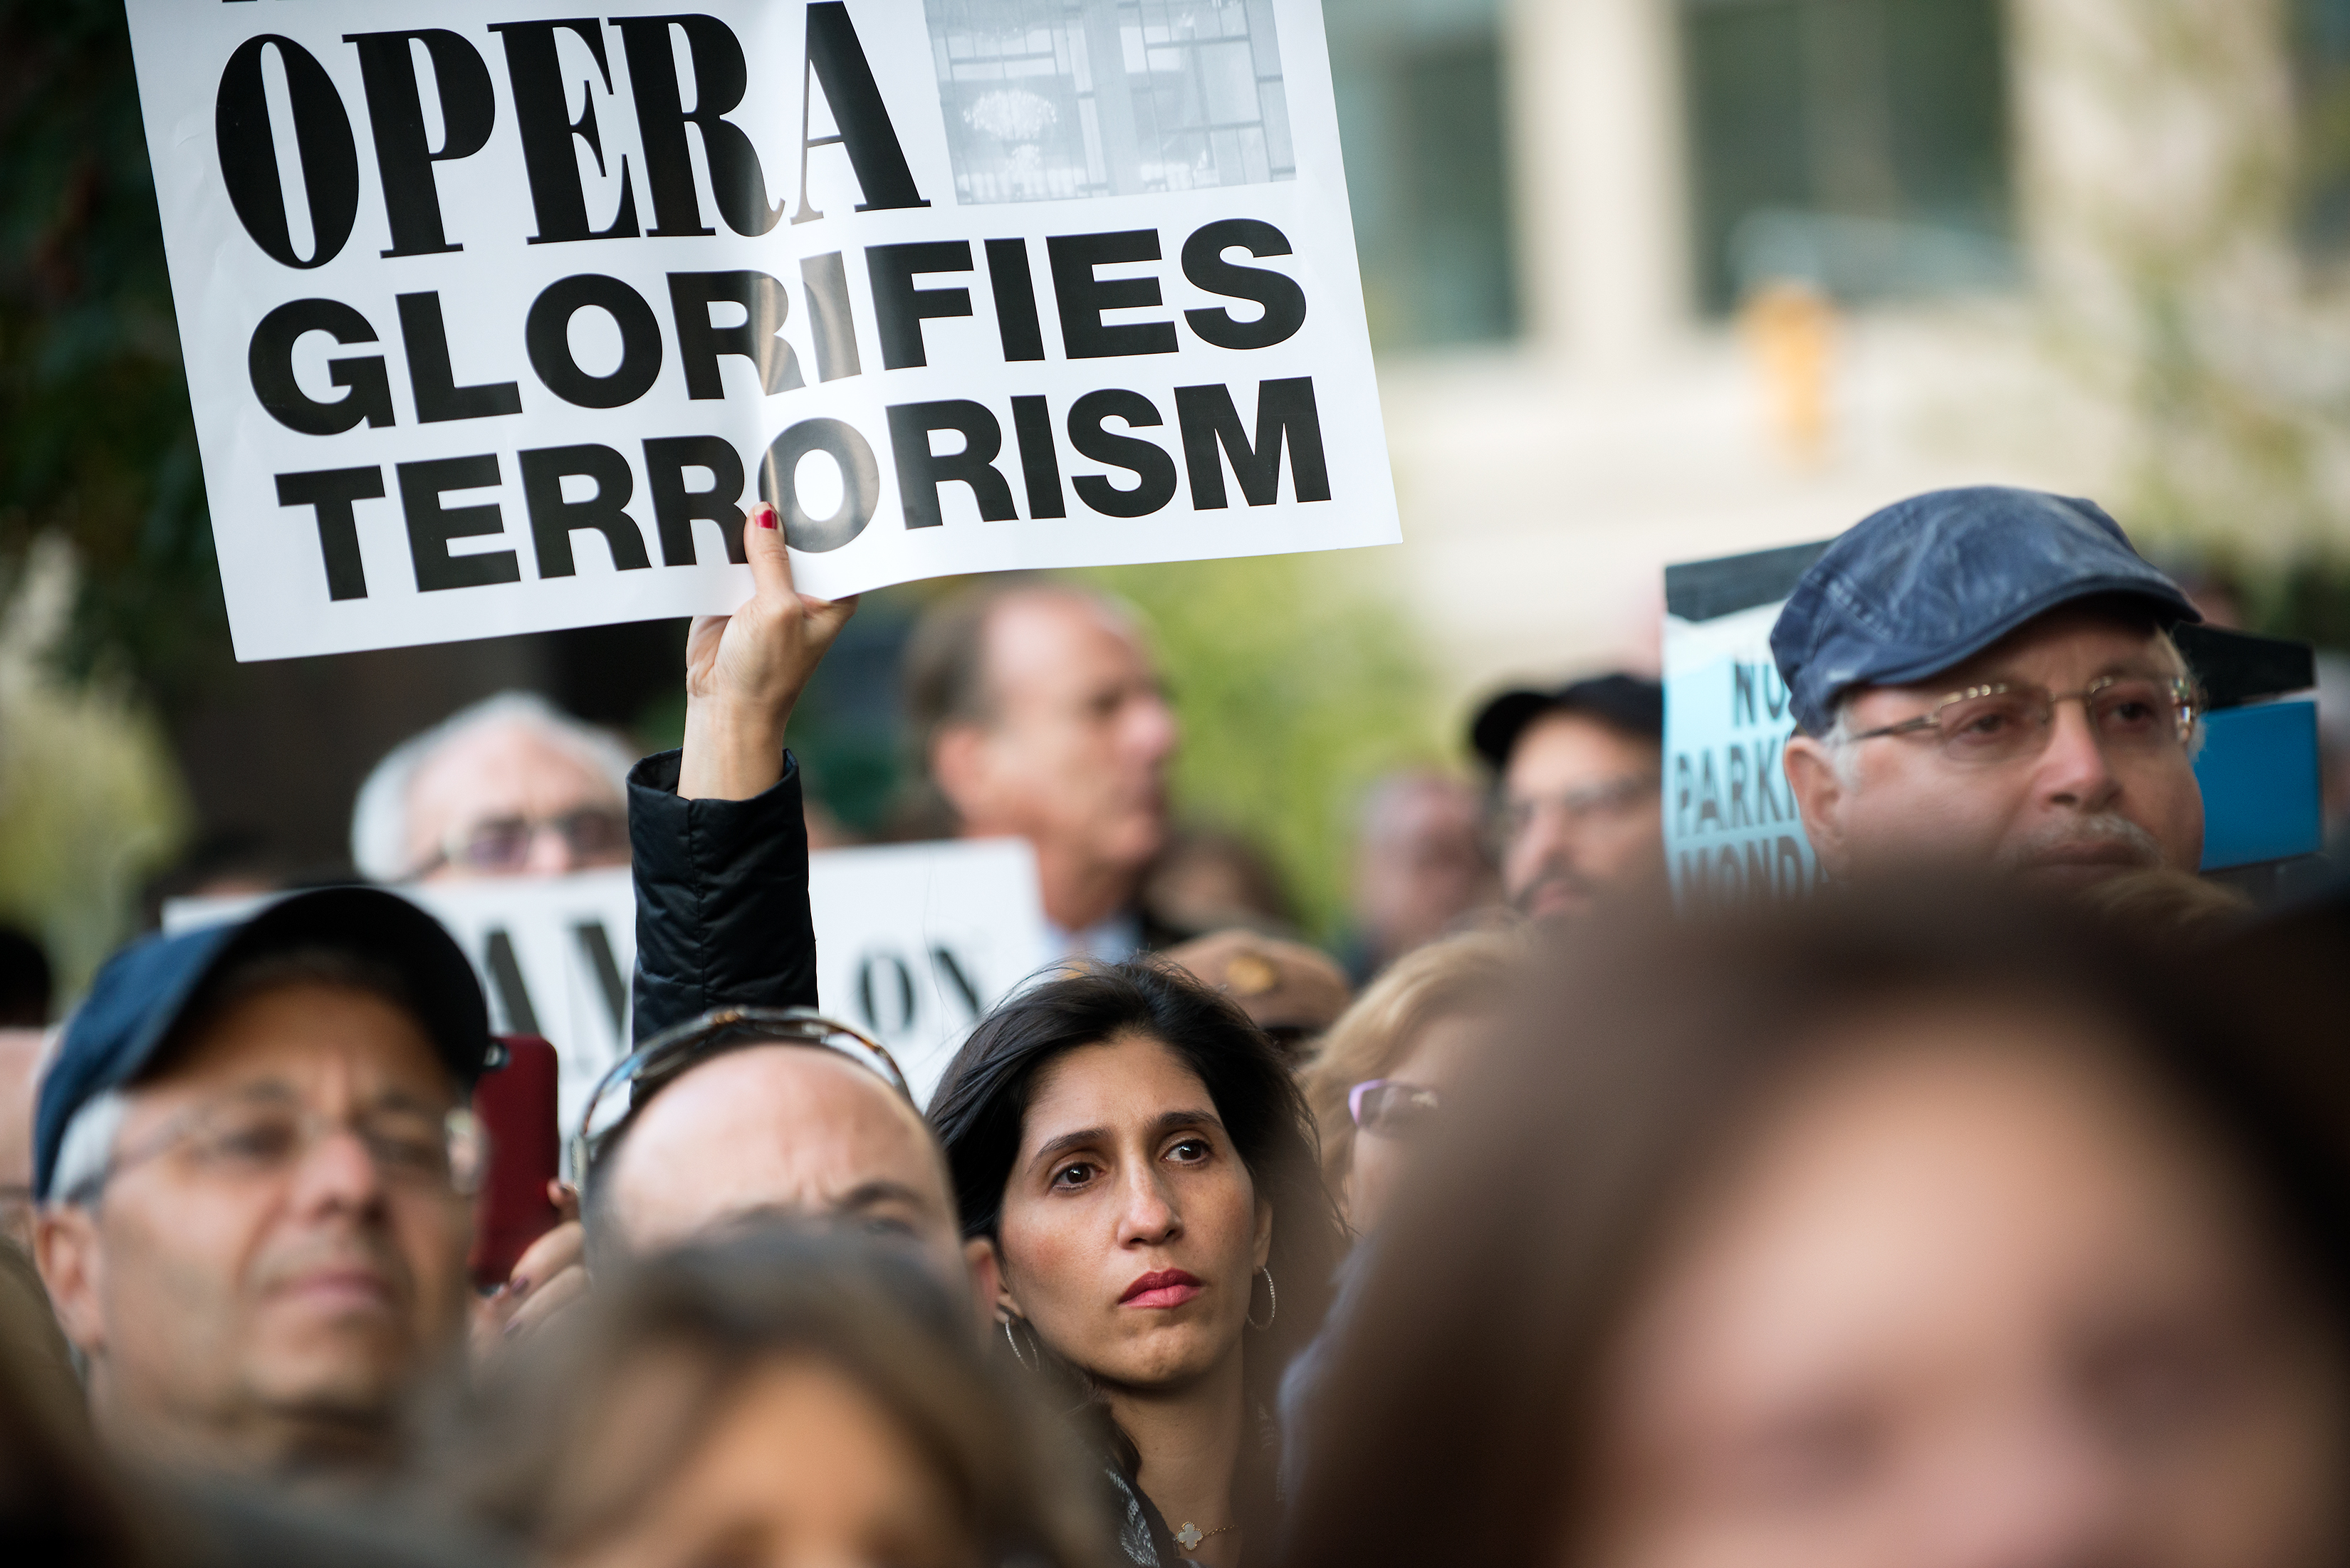 A protestor holds up a sign outside the Metropolitan Opera at Lincoln Center on opening night of the opera,  The Death of Klinghoffer  on October 20, 2014 in New York City. The opera, by John Adams, depicts the death of Leon Klinghoffer, a Jewish cruise passenger from New York, who was killed and dumped overboard during a 1985 hijacking of an Italian cruise ship by Palestinian terrorists.